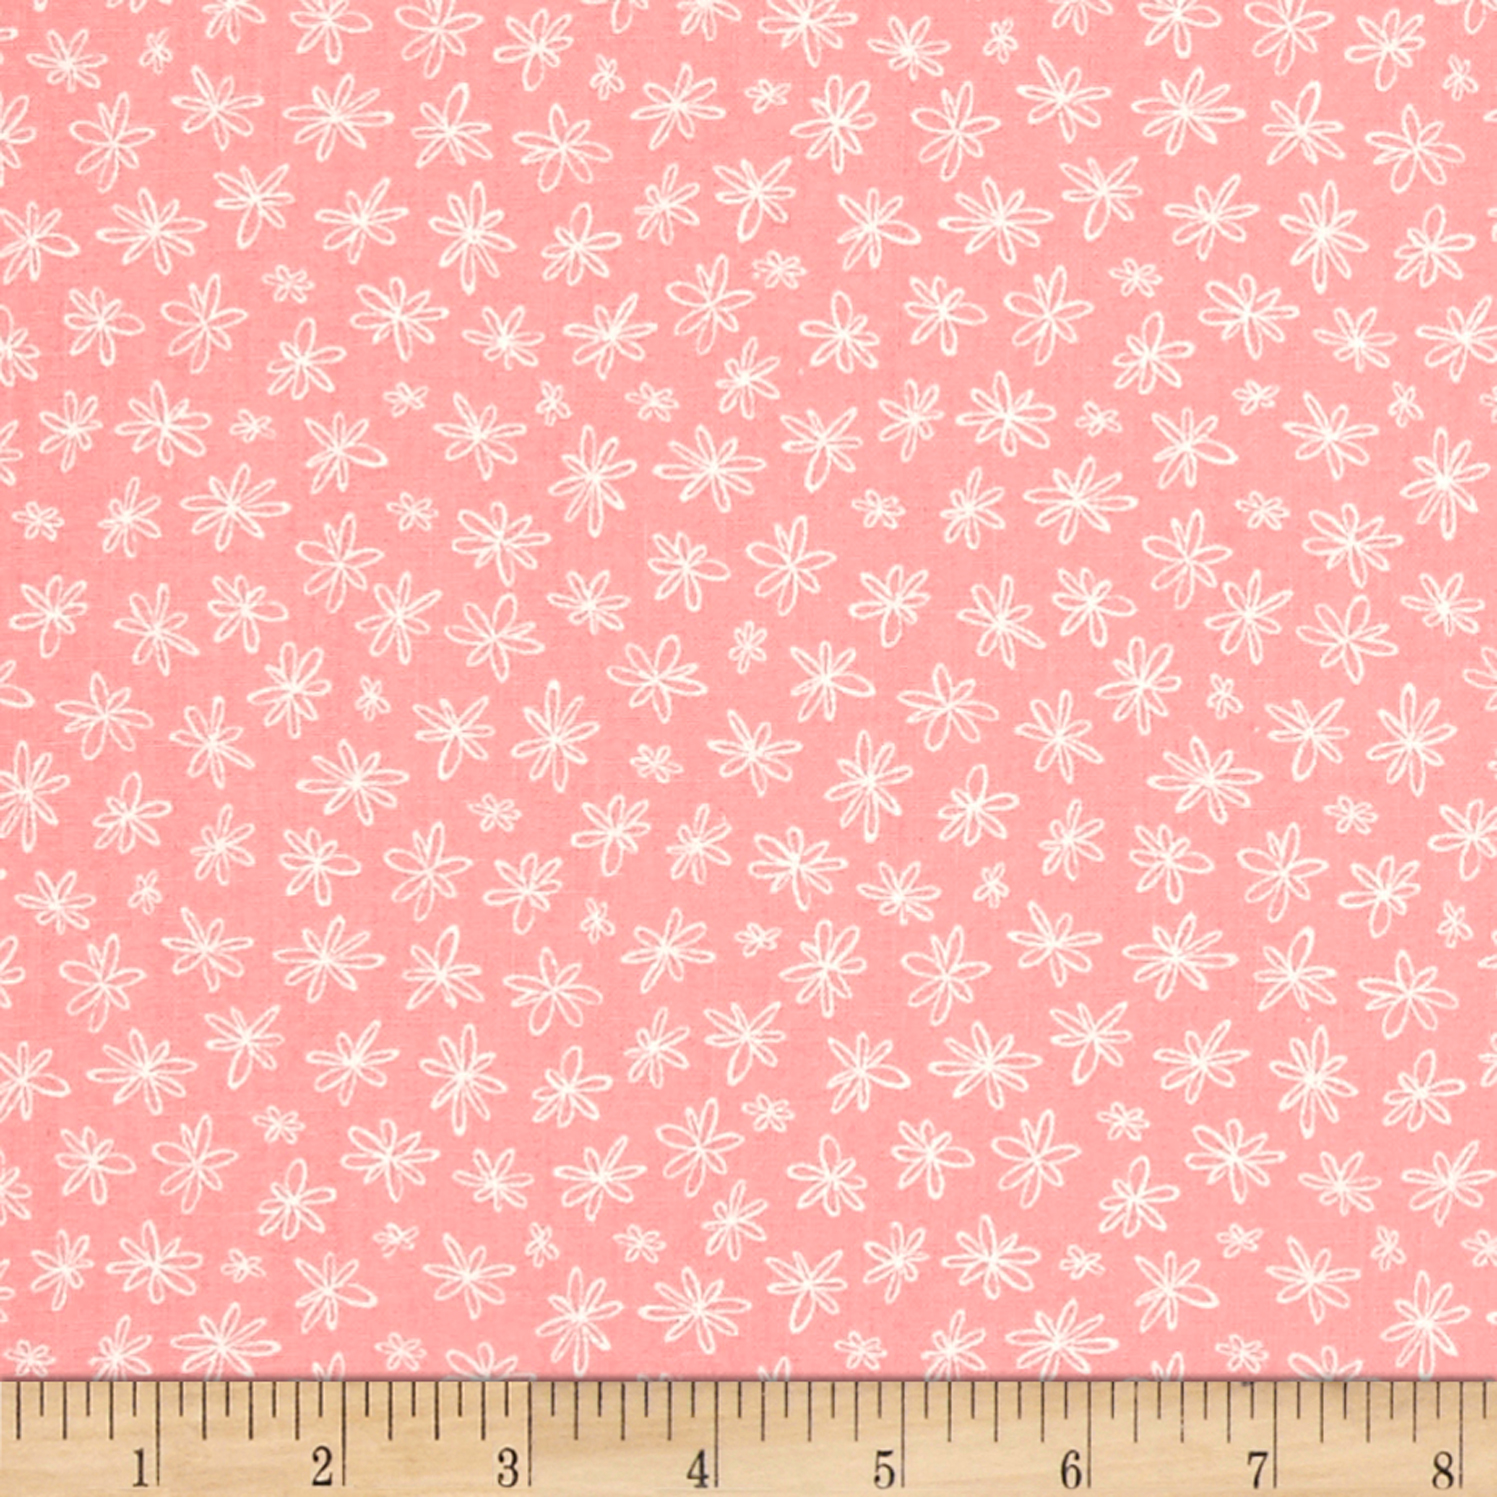 Going_Steady_Fanciful_Floral_Pink_Fabric